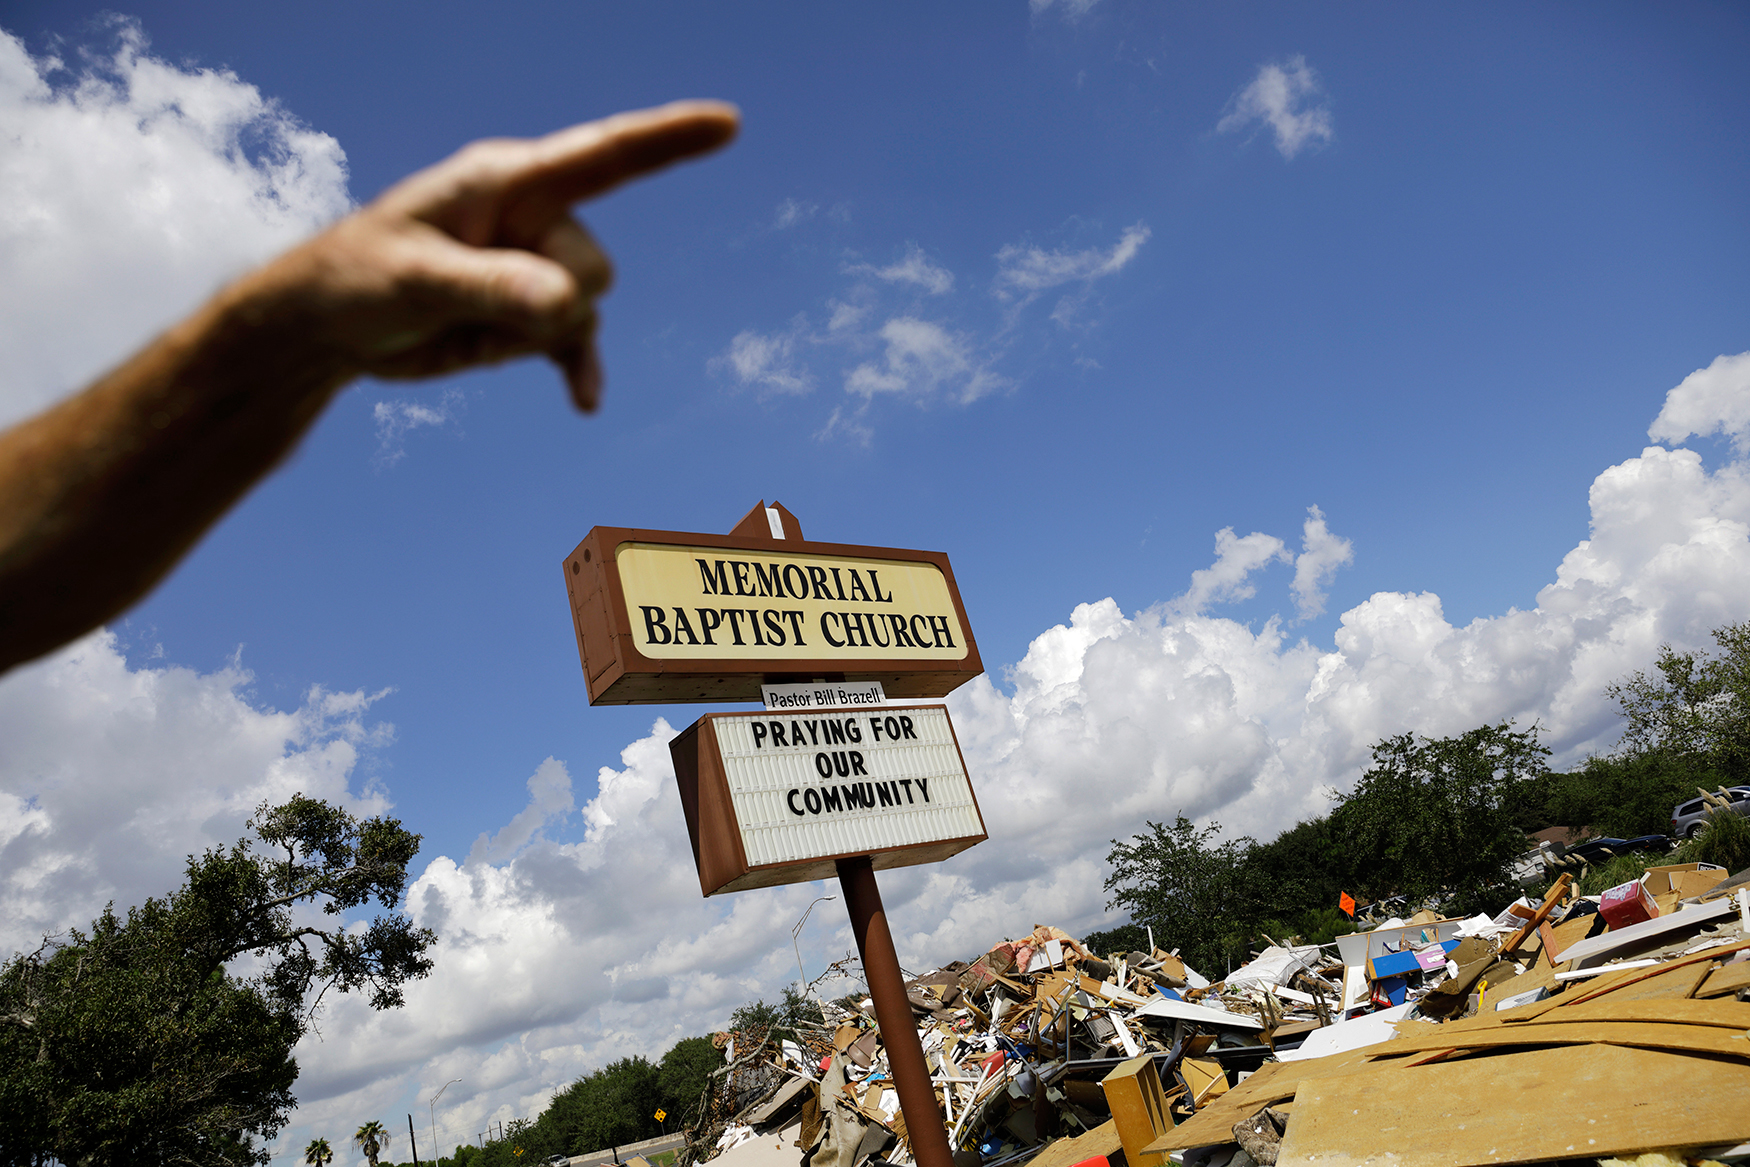 """Debris sits outside the Memorial Baptist Church in Port Arthur, Texas, Monday, Sept. 25, 2017. It was damaged by Hurricane Harvey floodwaters. Church member Wayne Christopher said, """"You know what it said up there? We were so busy working we didn't notice. Then one day we looked up and it said, 'you've got problems, we have the solution,'"""" Christopher's wife Polly remembers. """"We said, 'we might need to change the sign.'"""" Because she's not sure that they have solutions for this. Now their sign reads: Praying for our Community."""" (AP Photo/David Goldman)"""